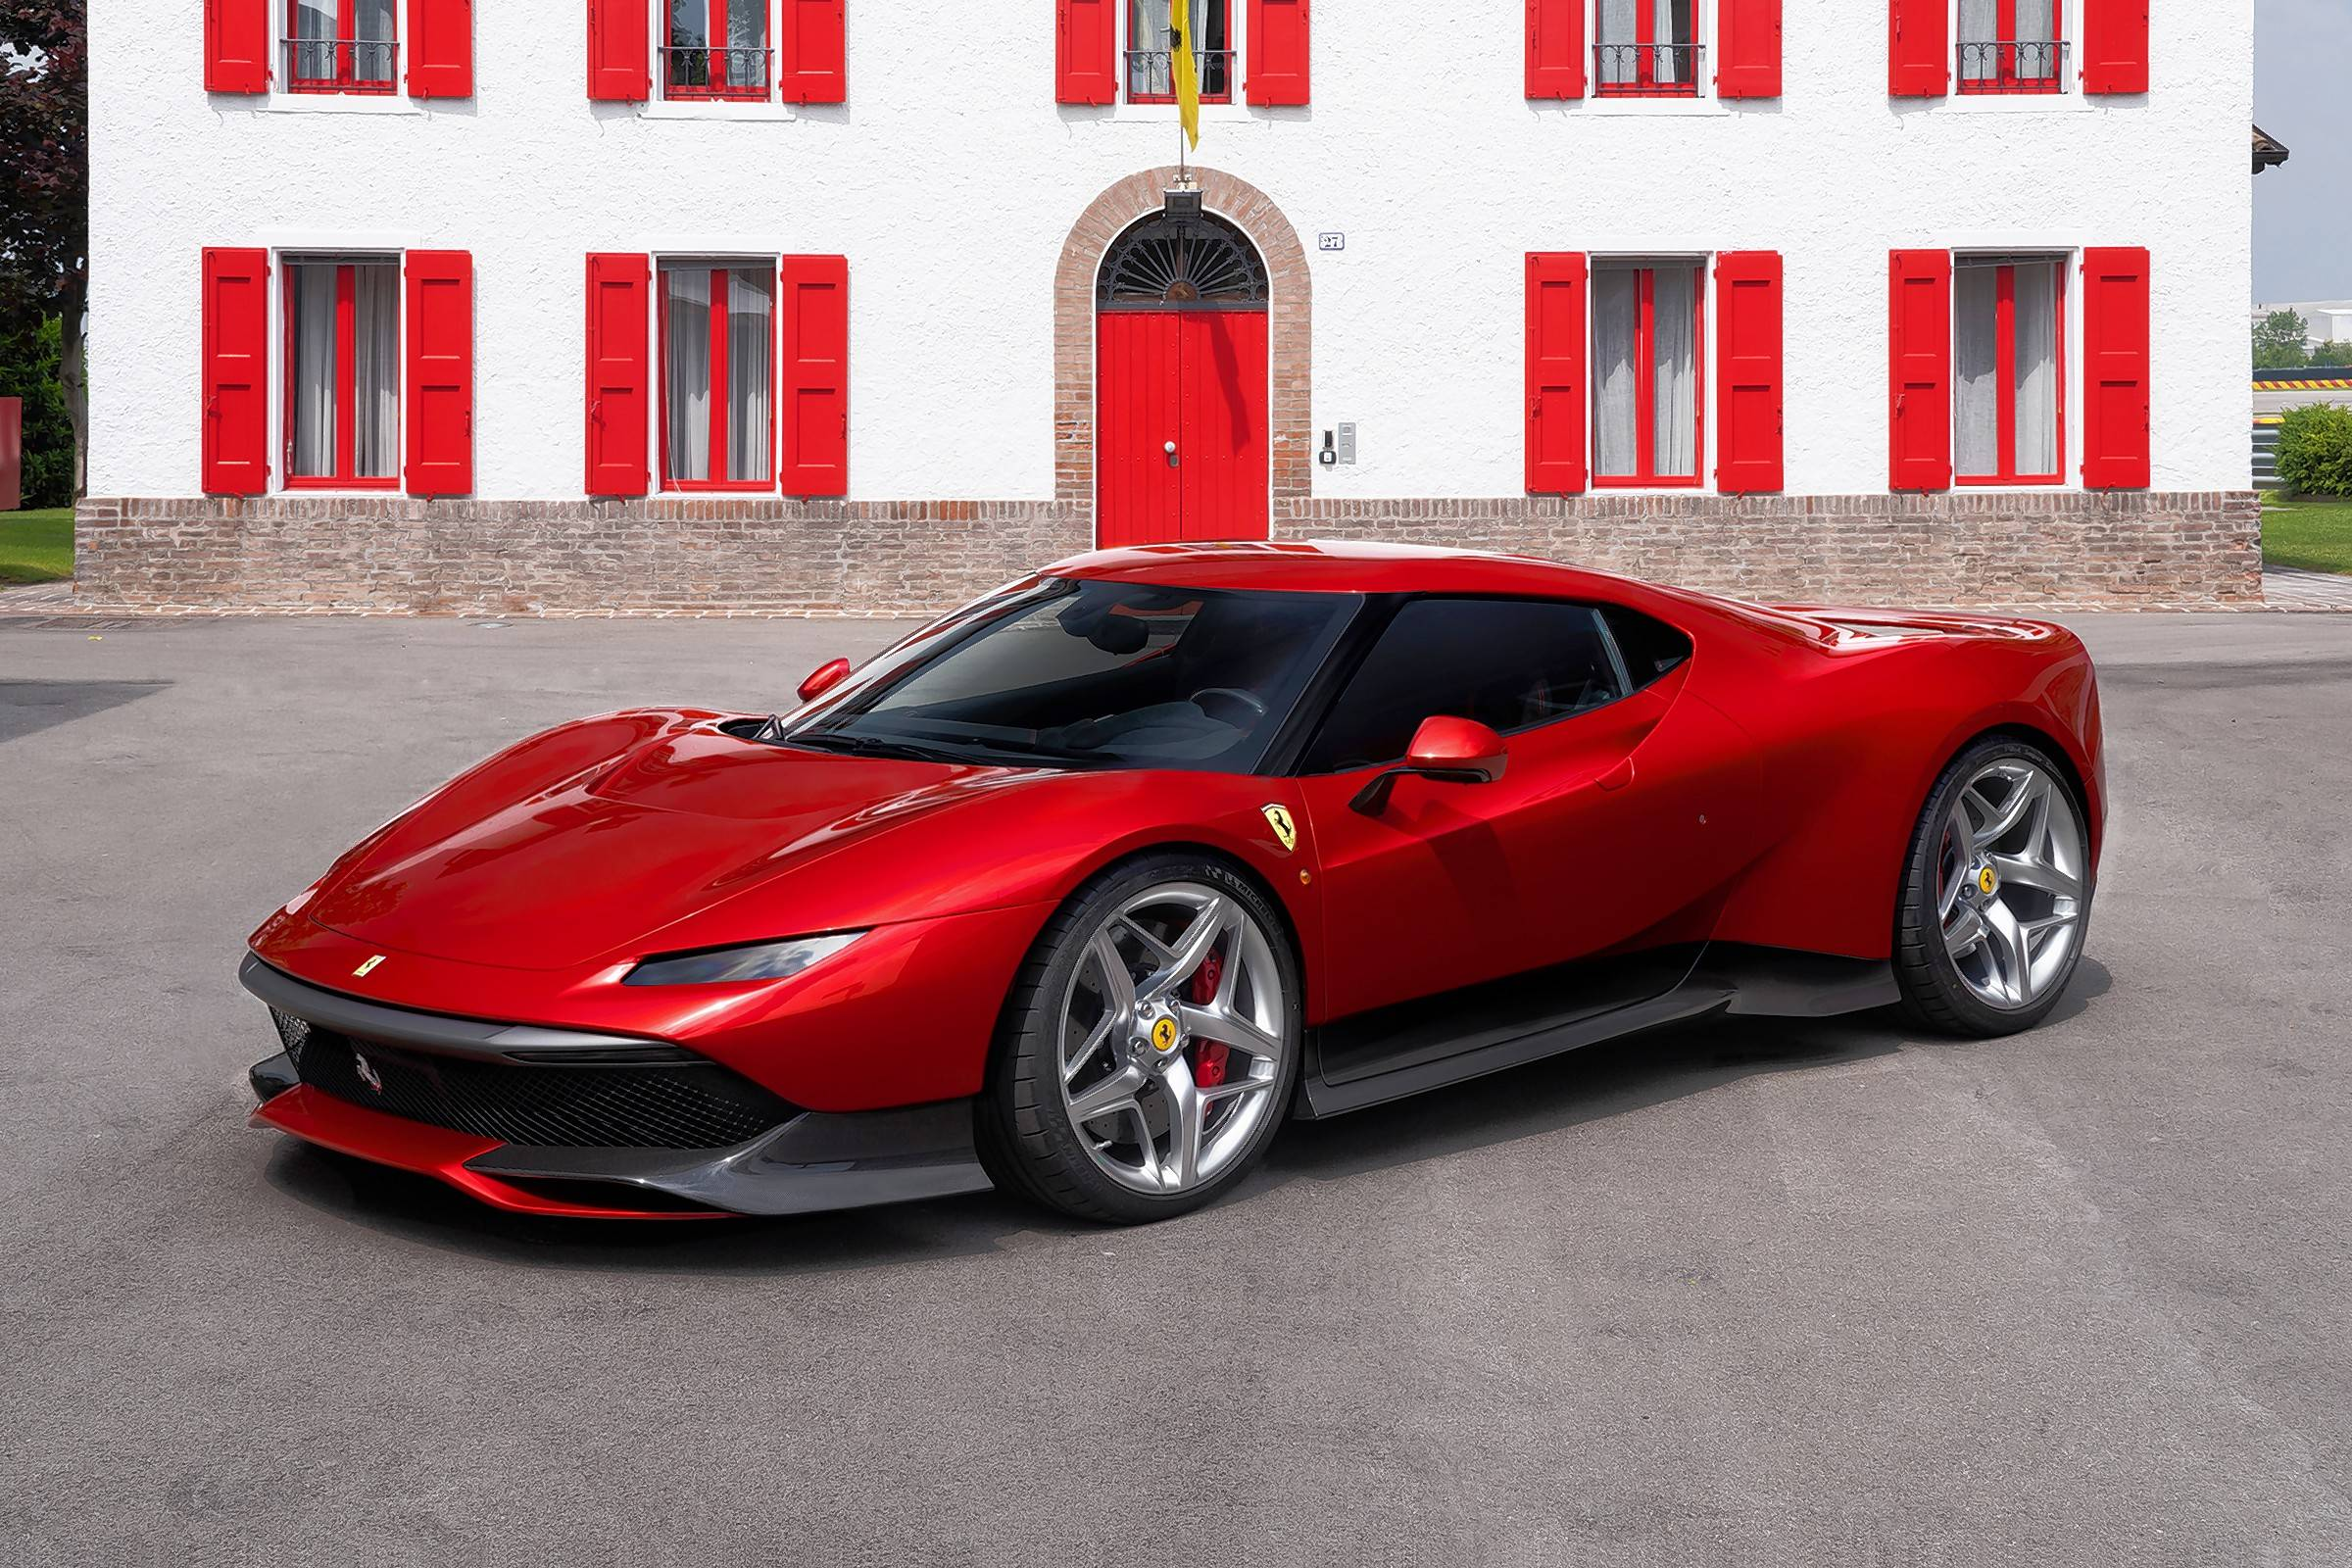 The Ferrari SP38 is a one-of-a-kind vehicle based on the 488 GTB.